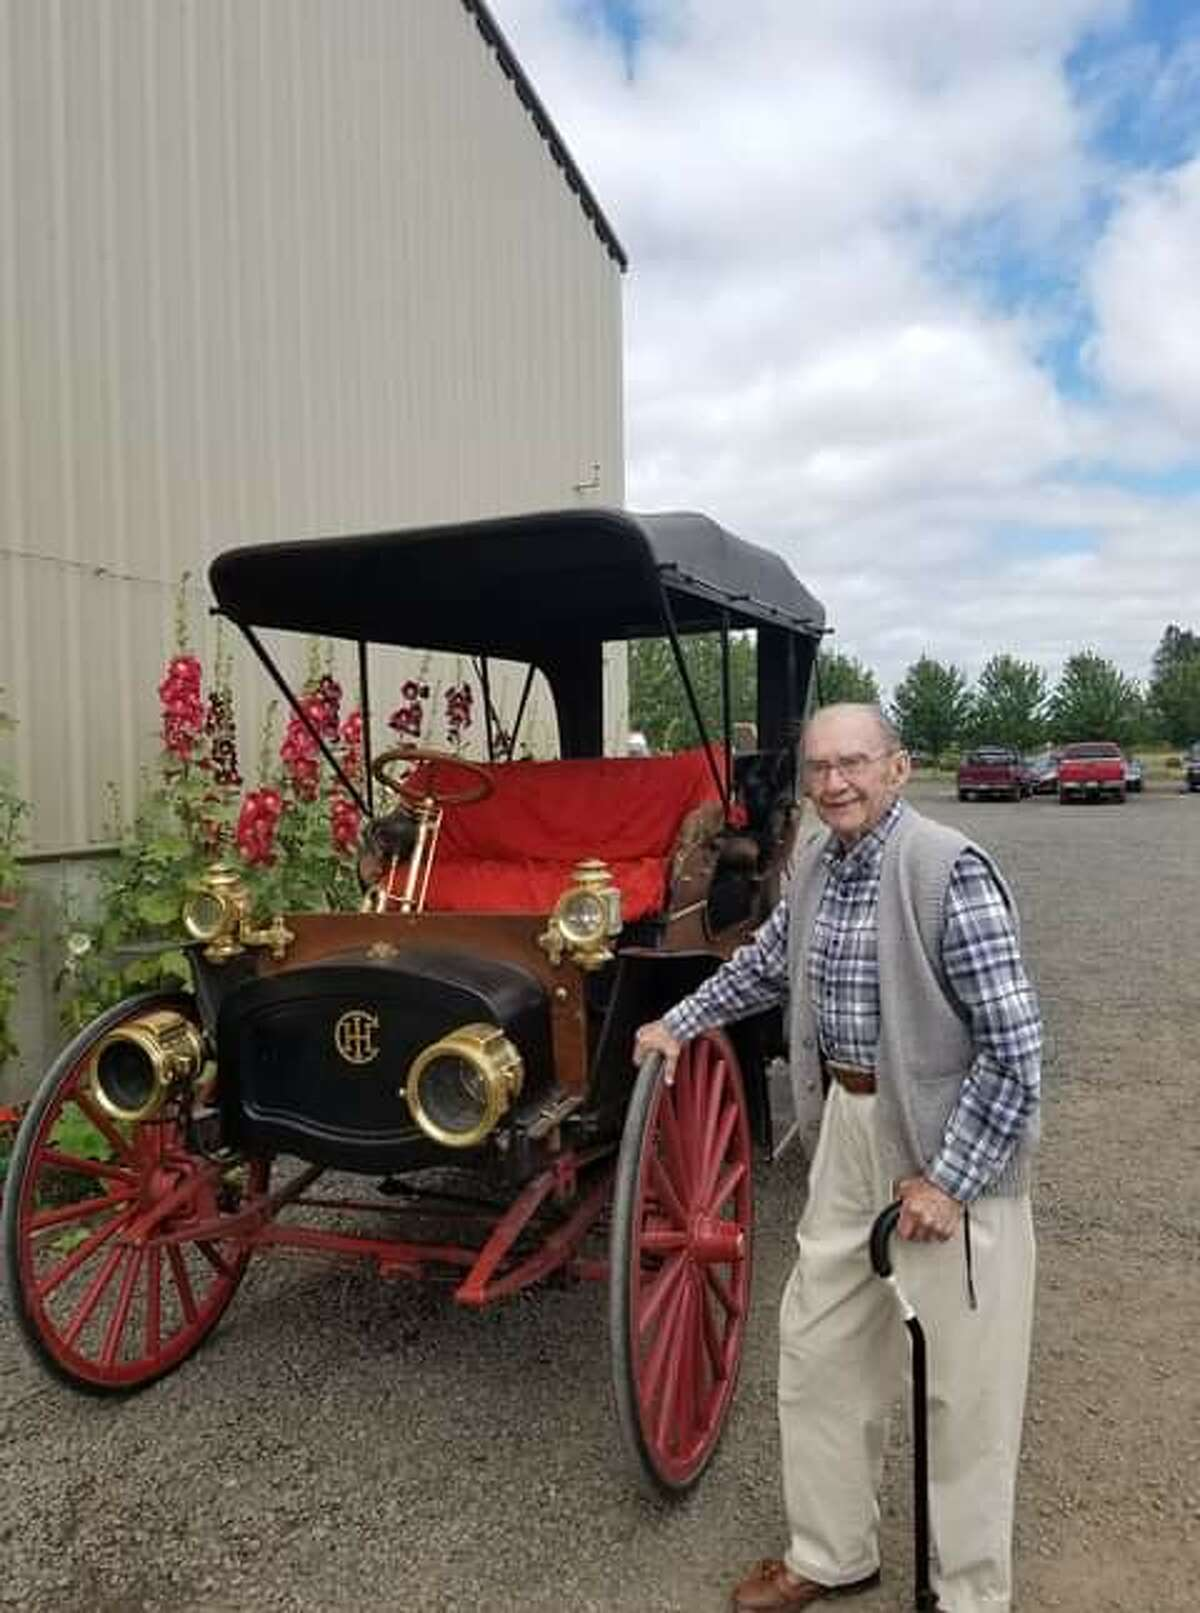 David Carlson died at the age of 95 on Dec. 19, 2020. During his 50 years in Manistee he ran the Ben Franklin store, owned Do-More Tractors, Jean House stores and sold commercial real estate for Century 21. He was also on the DDA for many years for Manistee. (Courtesy photo)